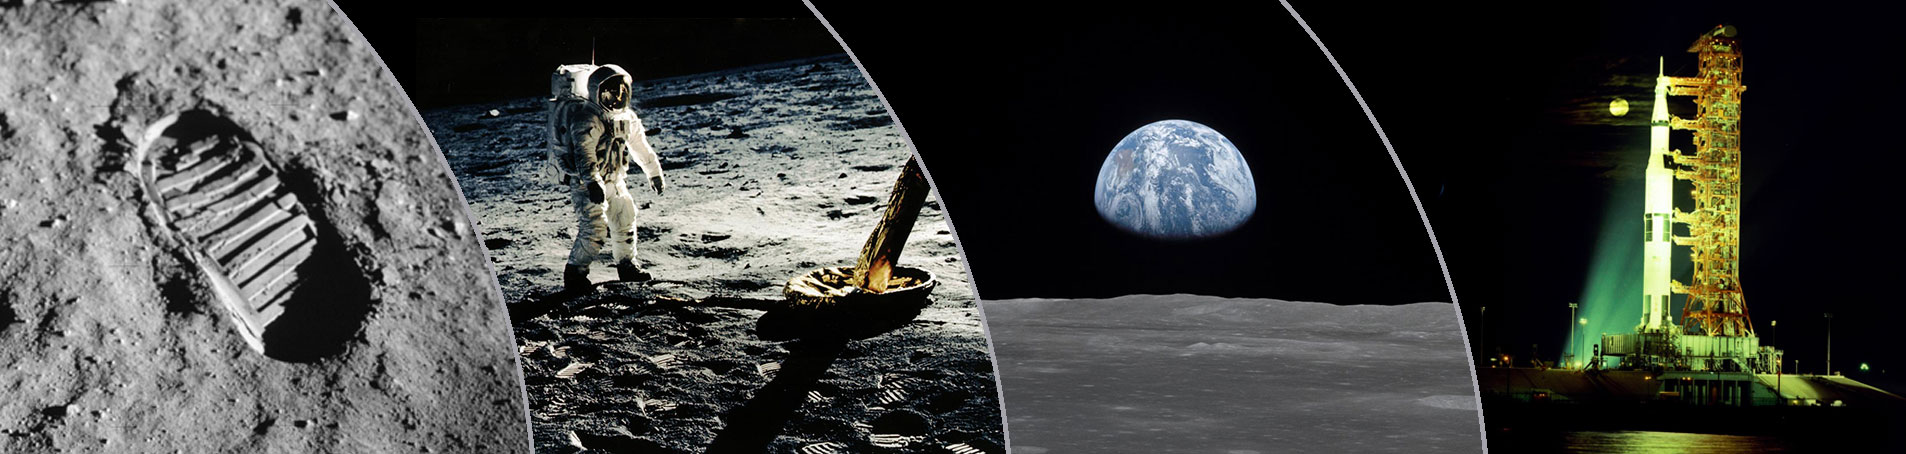 Astronaut boot print on the lunar surface from Apollo 11; Astronaut Edwin walking on the moon from Apollo 11; Earthrise photo taken during Apollo 7; Saturn V rocket on launch pad for Apollo 17 mission.